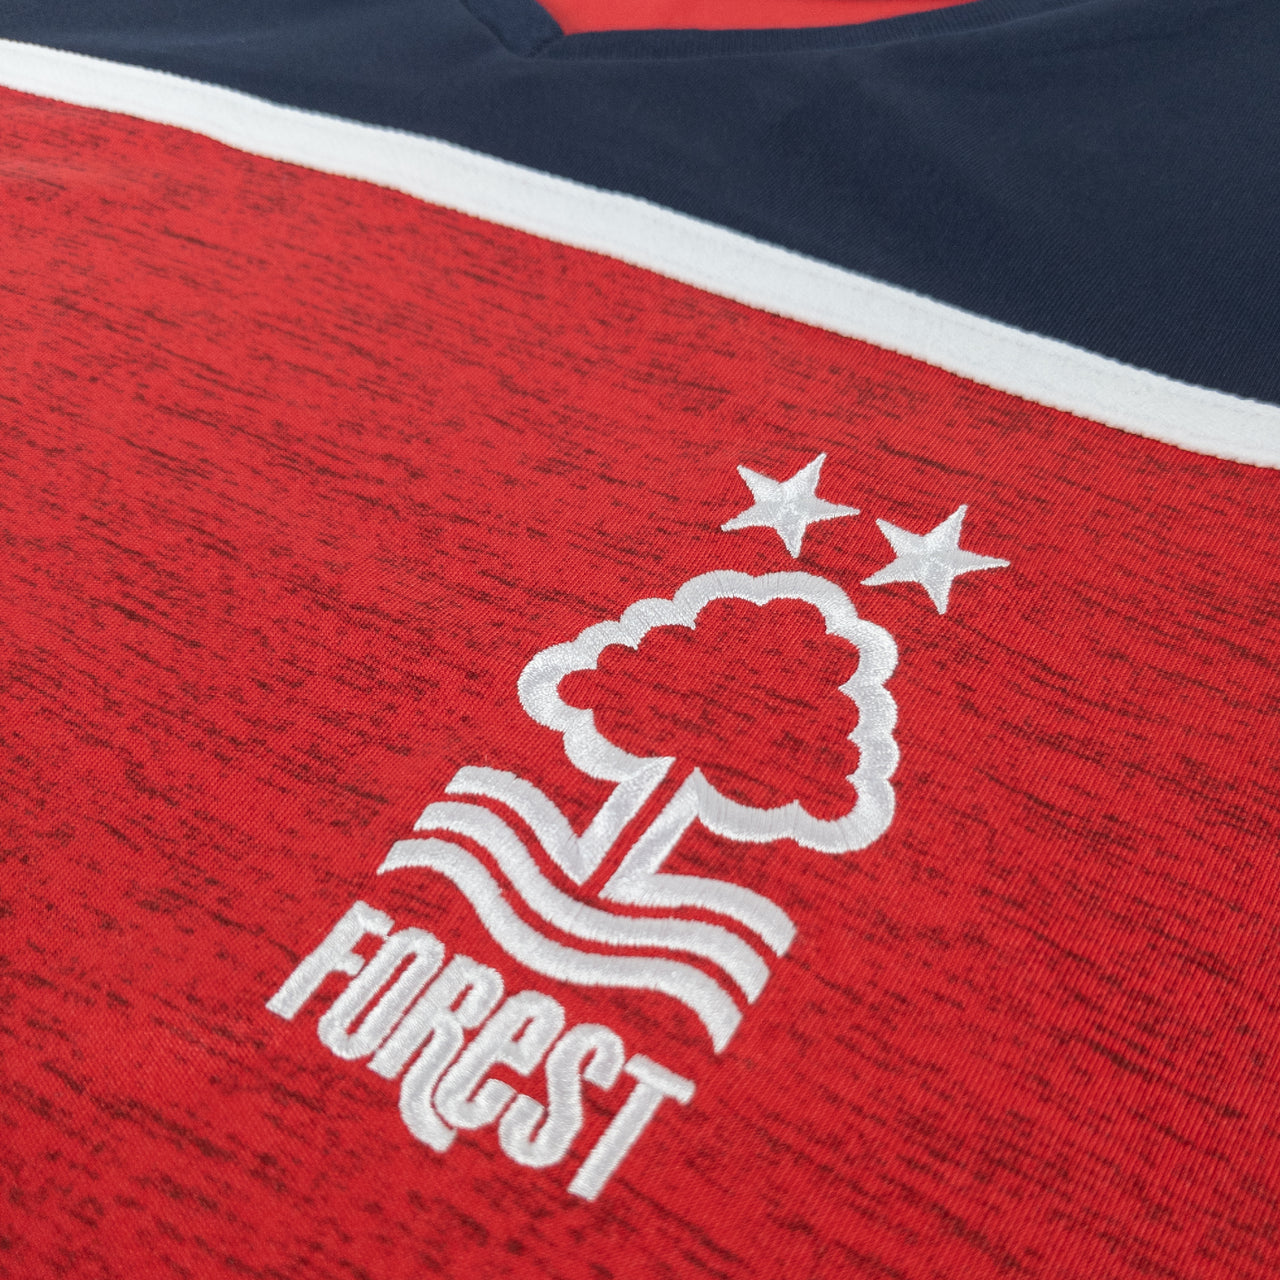 NFFC Mens Player Pre Season Jersey 2020/21